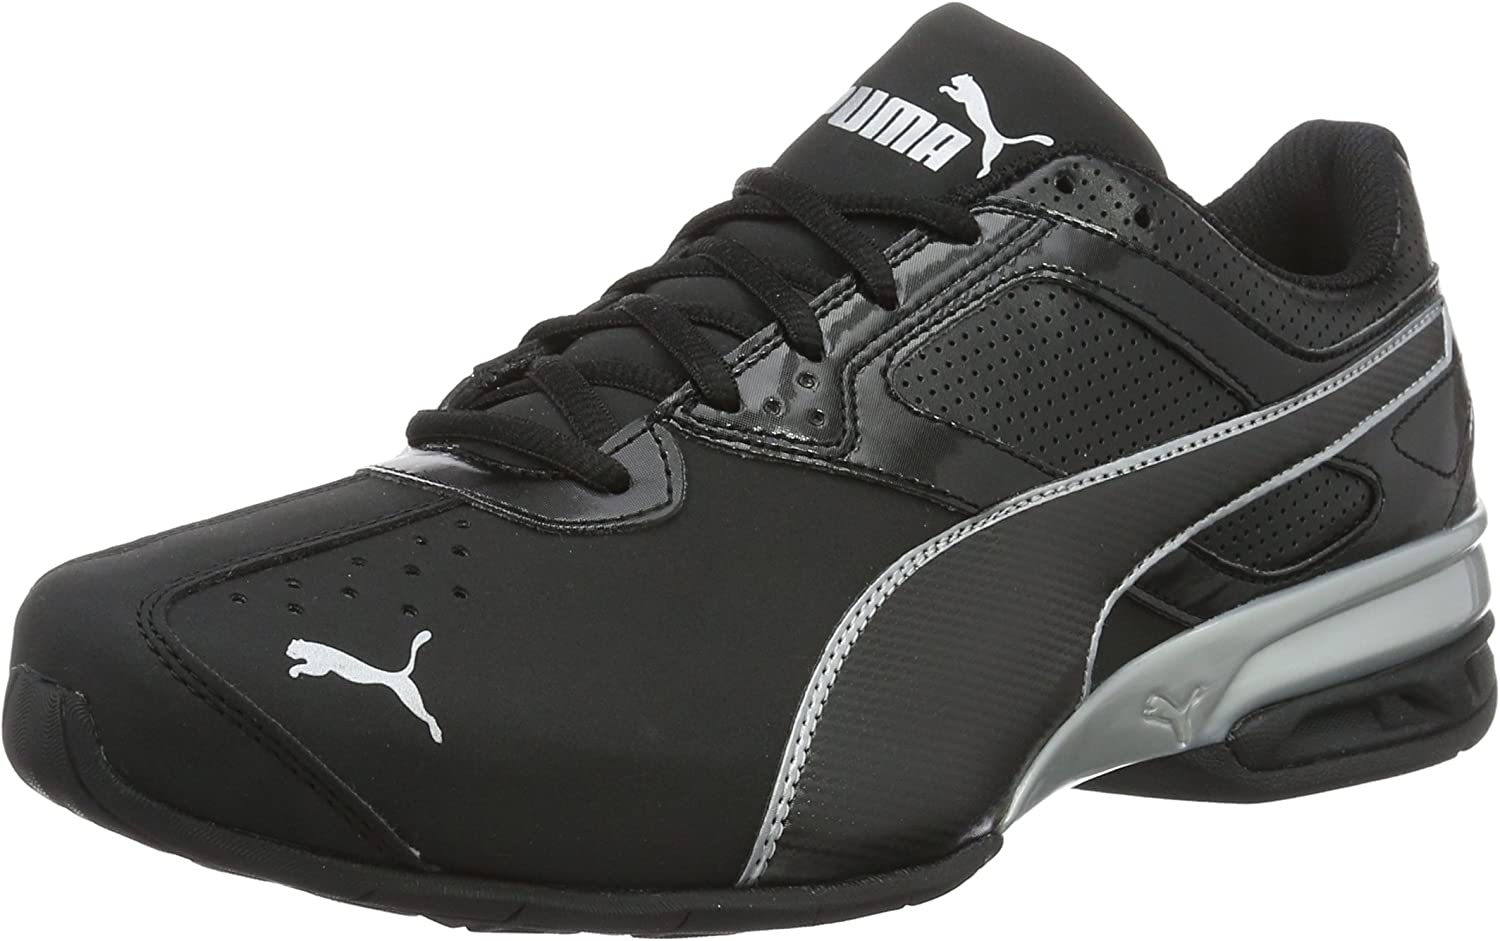 Puma Tazon 6 FM Sneaker Men Trainers Black 189873 03